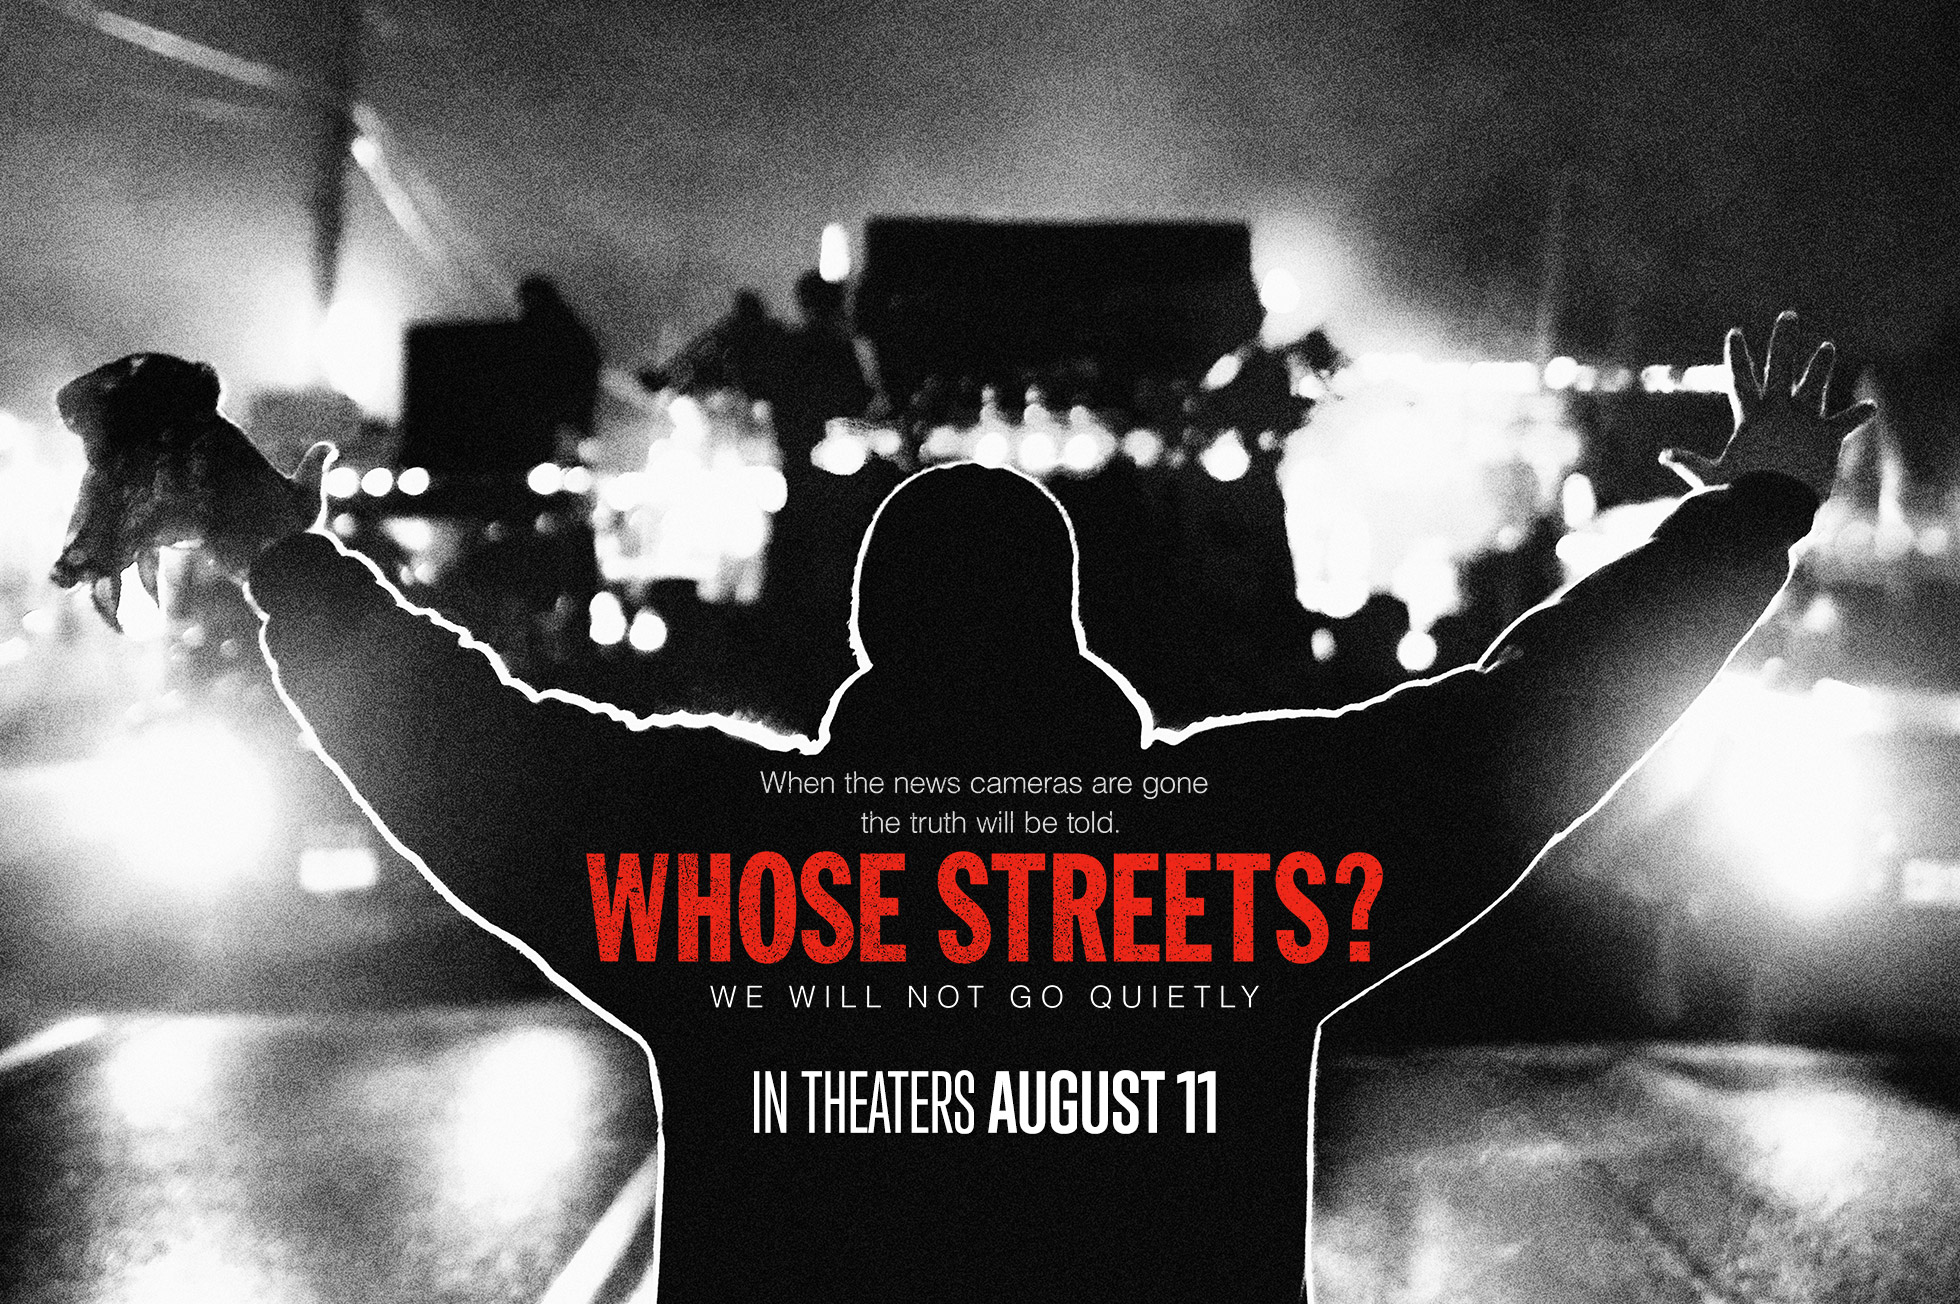 A poster for the documentary film Whose Streets about the Ferguson, Missouri protests following Mike Brown's death